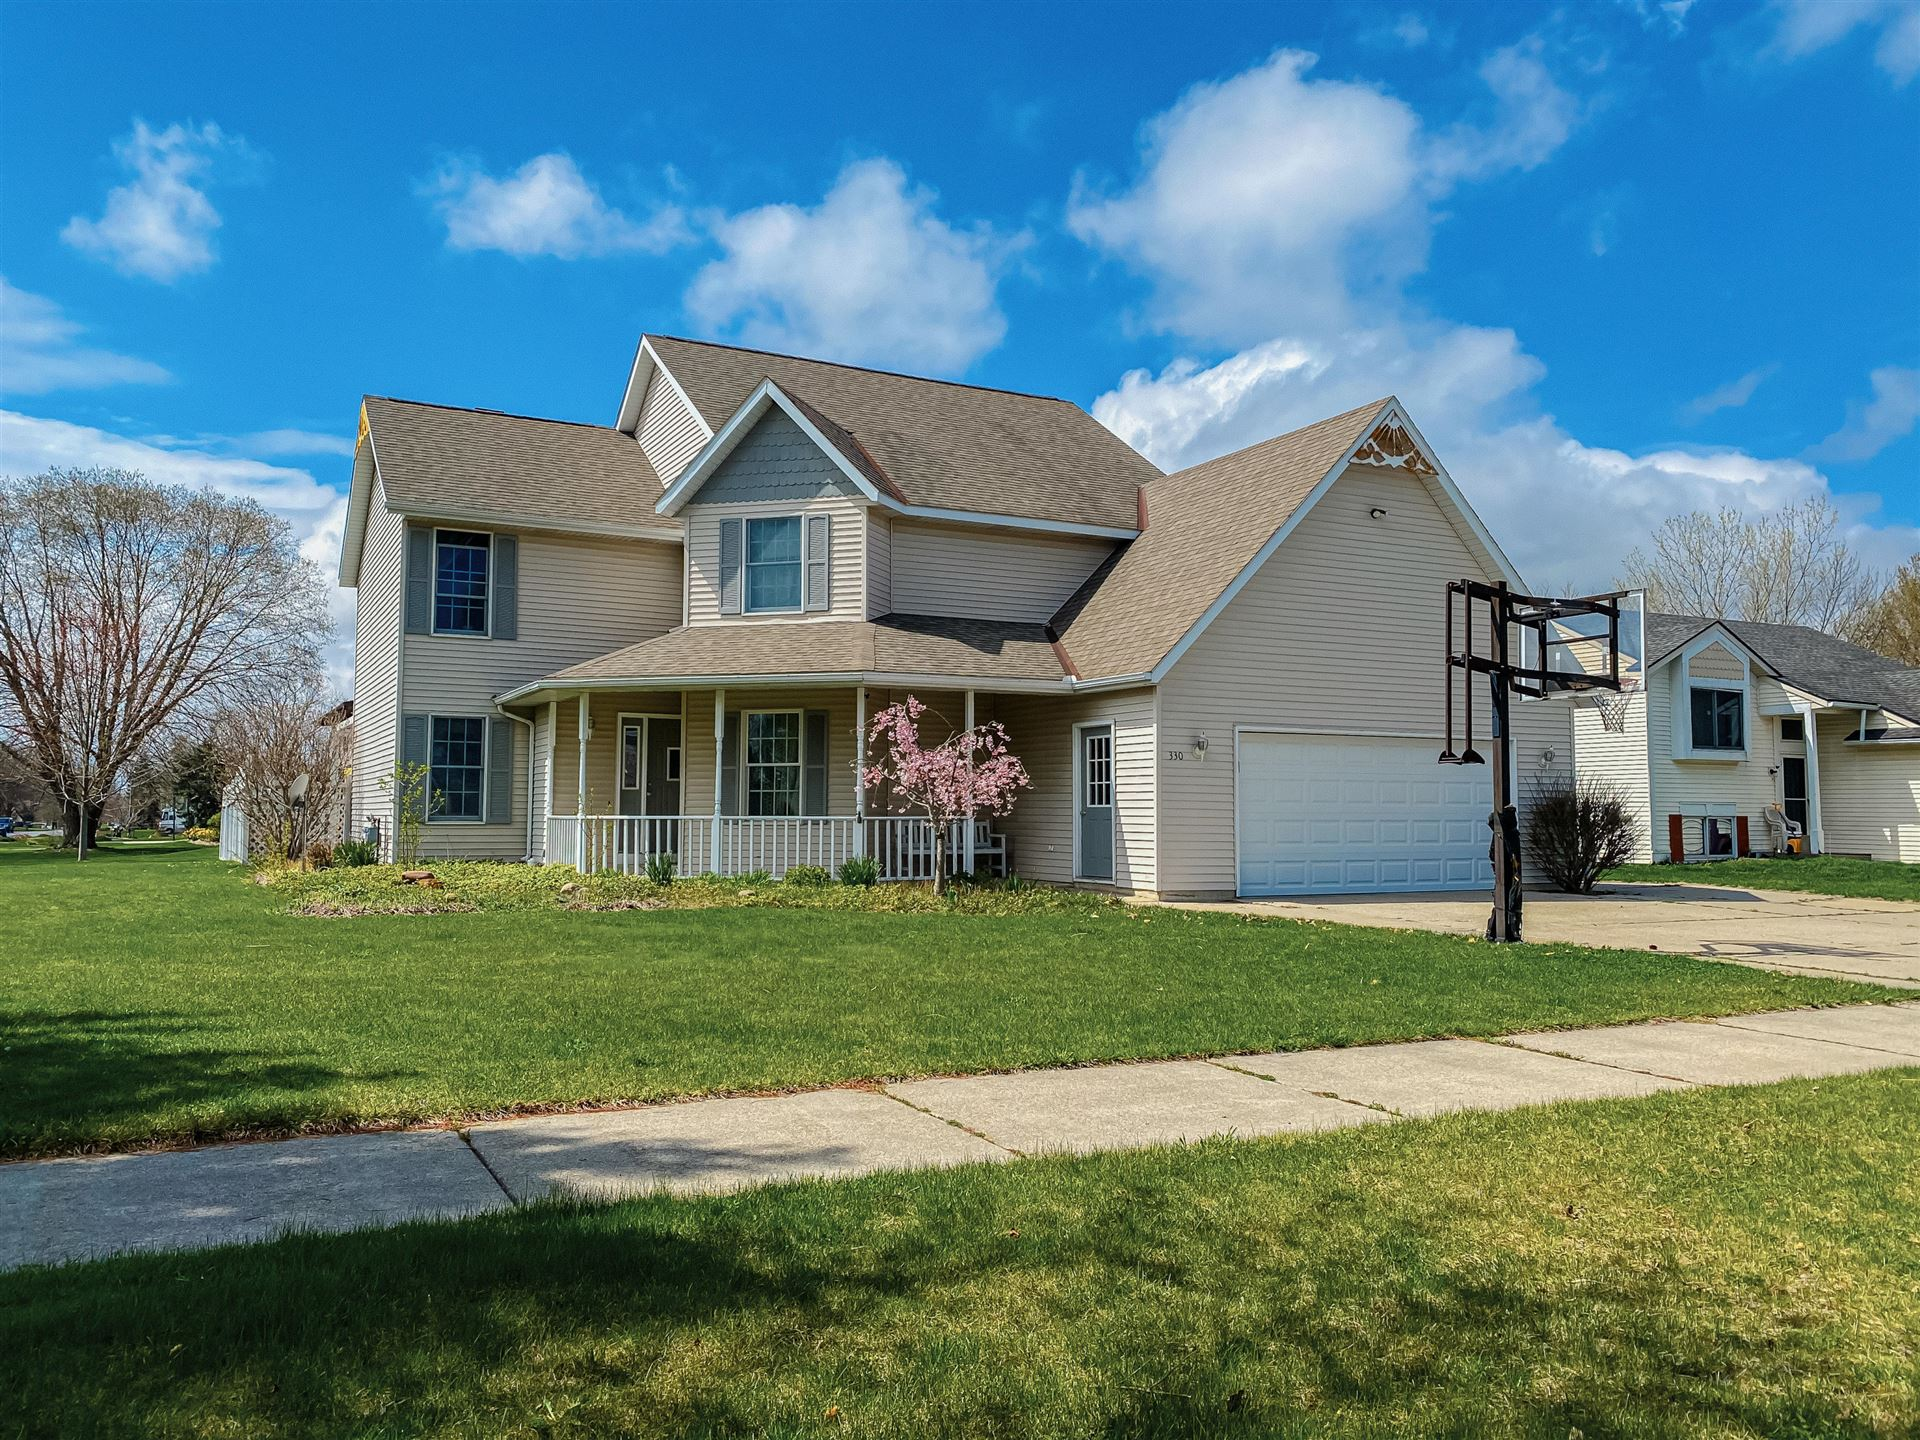 330 Jennifer Lane, Holland, MI 49423 - MLS#: 21012211